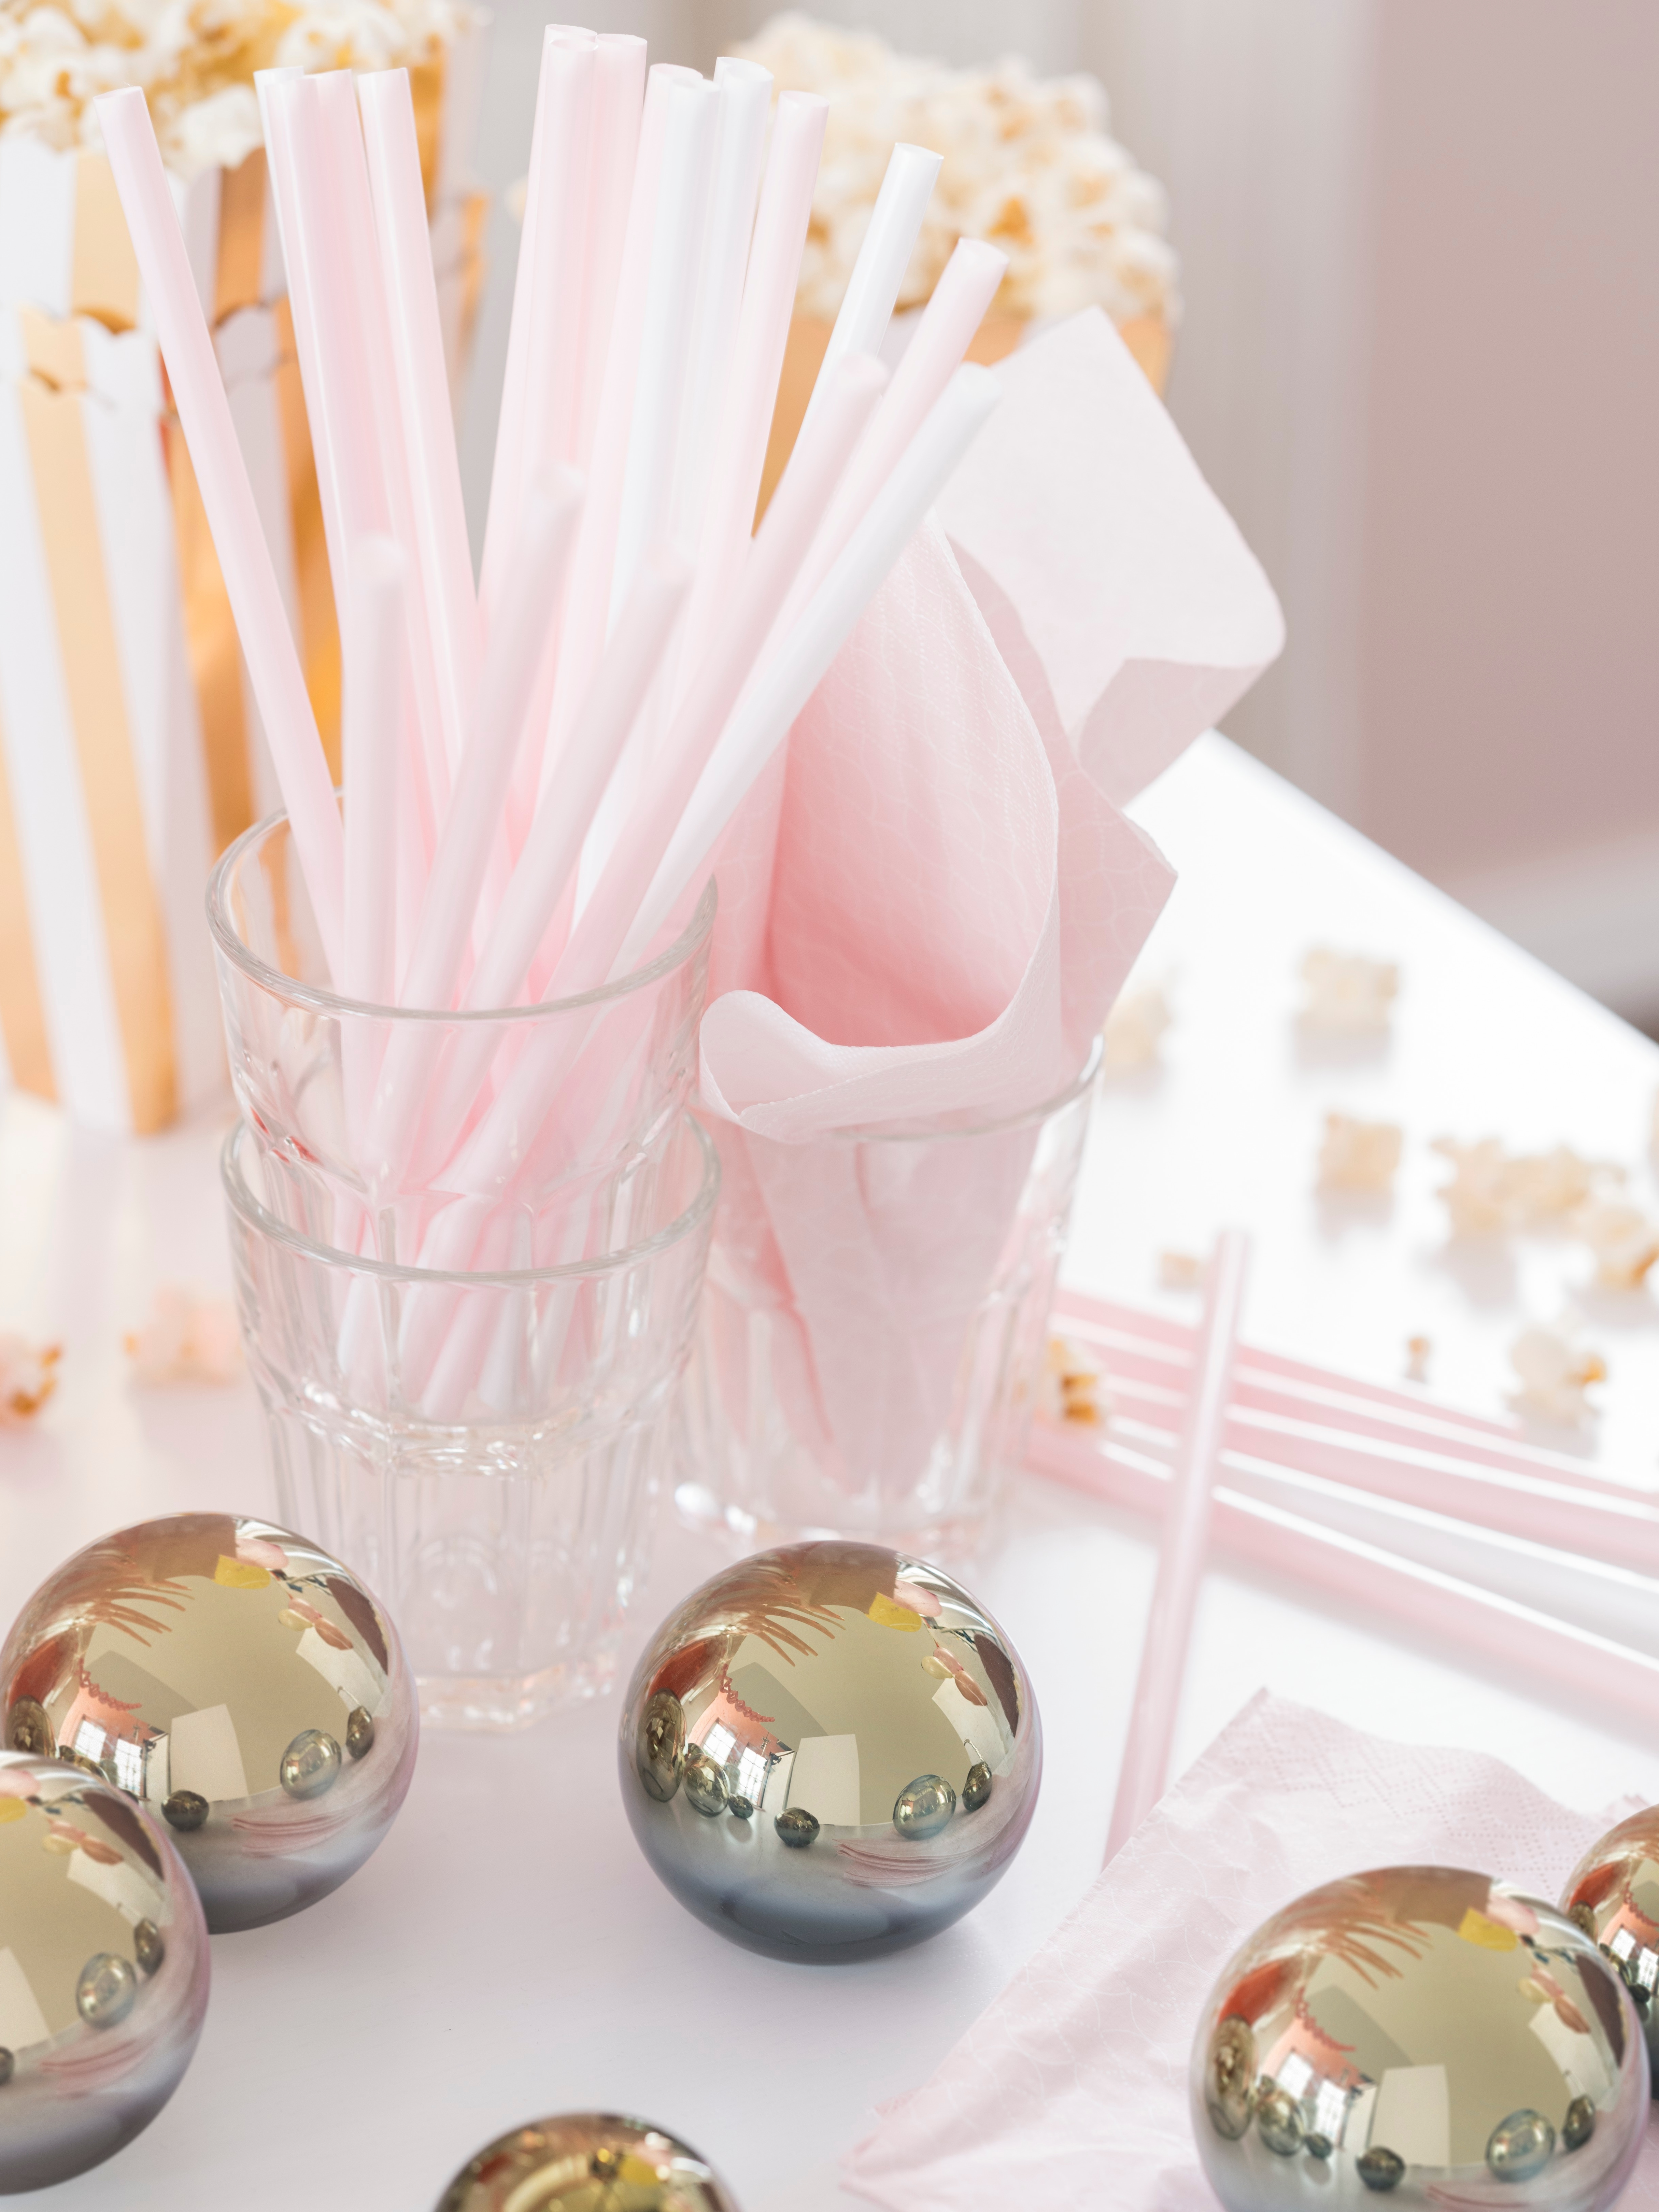 A POKAL clear glass holds reusable drinking straws by brass-coloured decoration balls and containers of popcorn on a table.